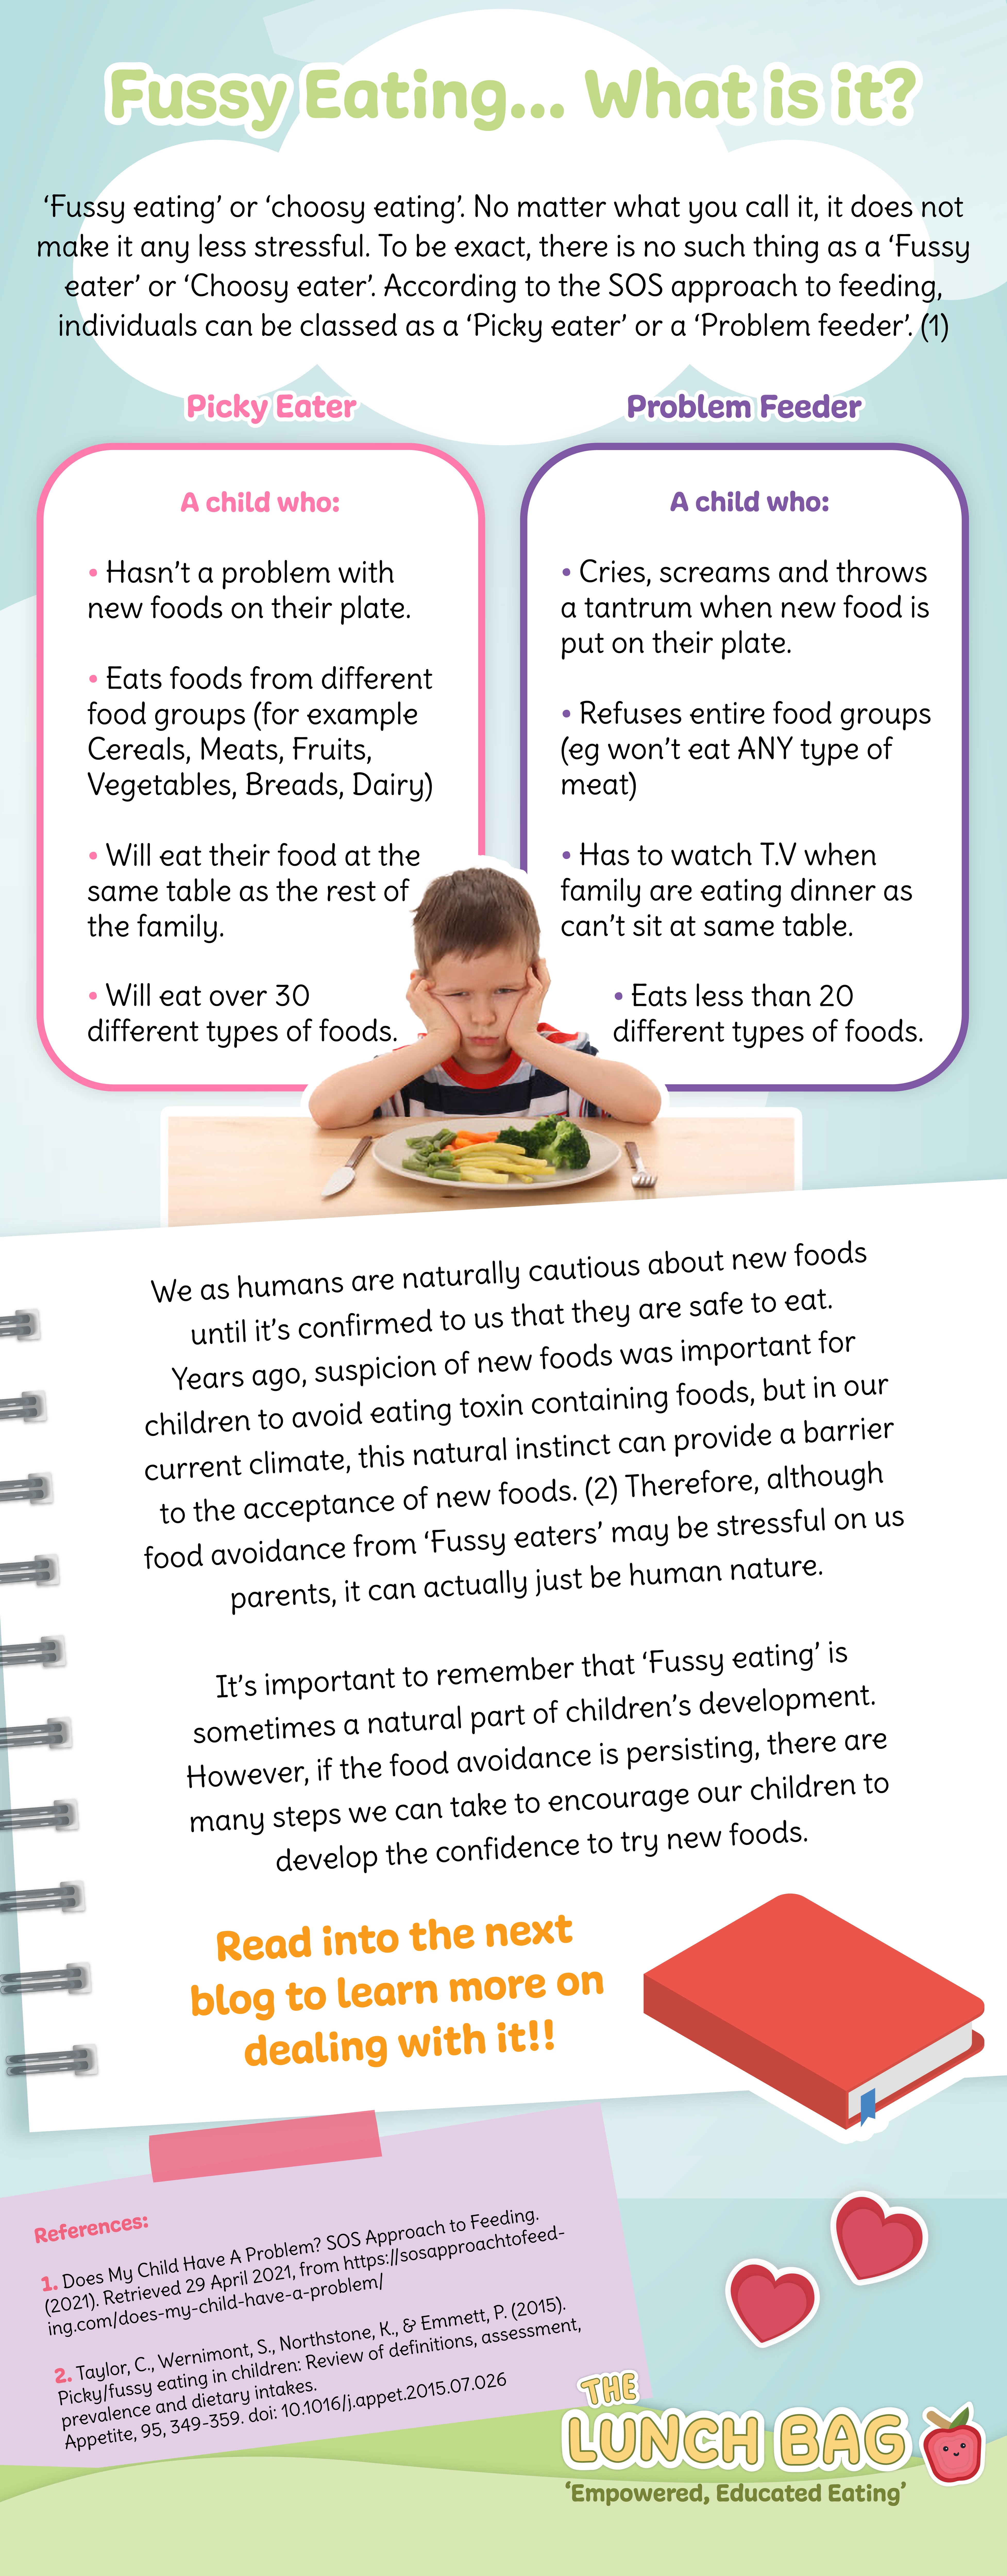 Fussy-eating-blog-what-is-it-?